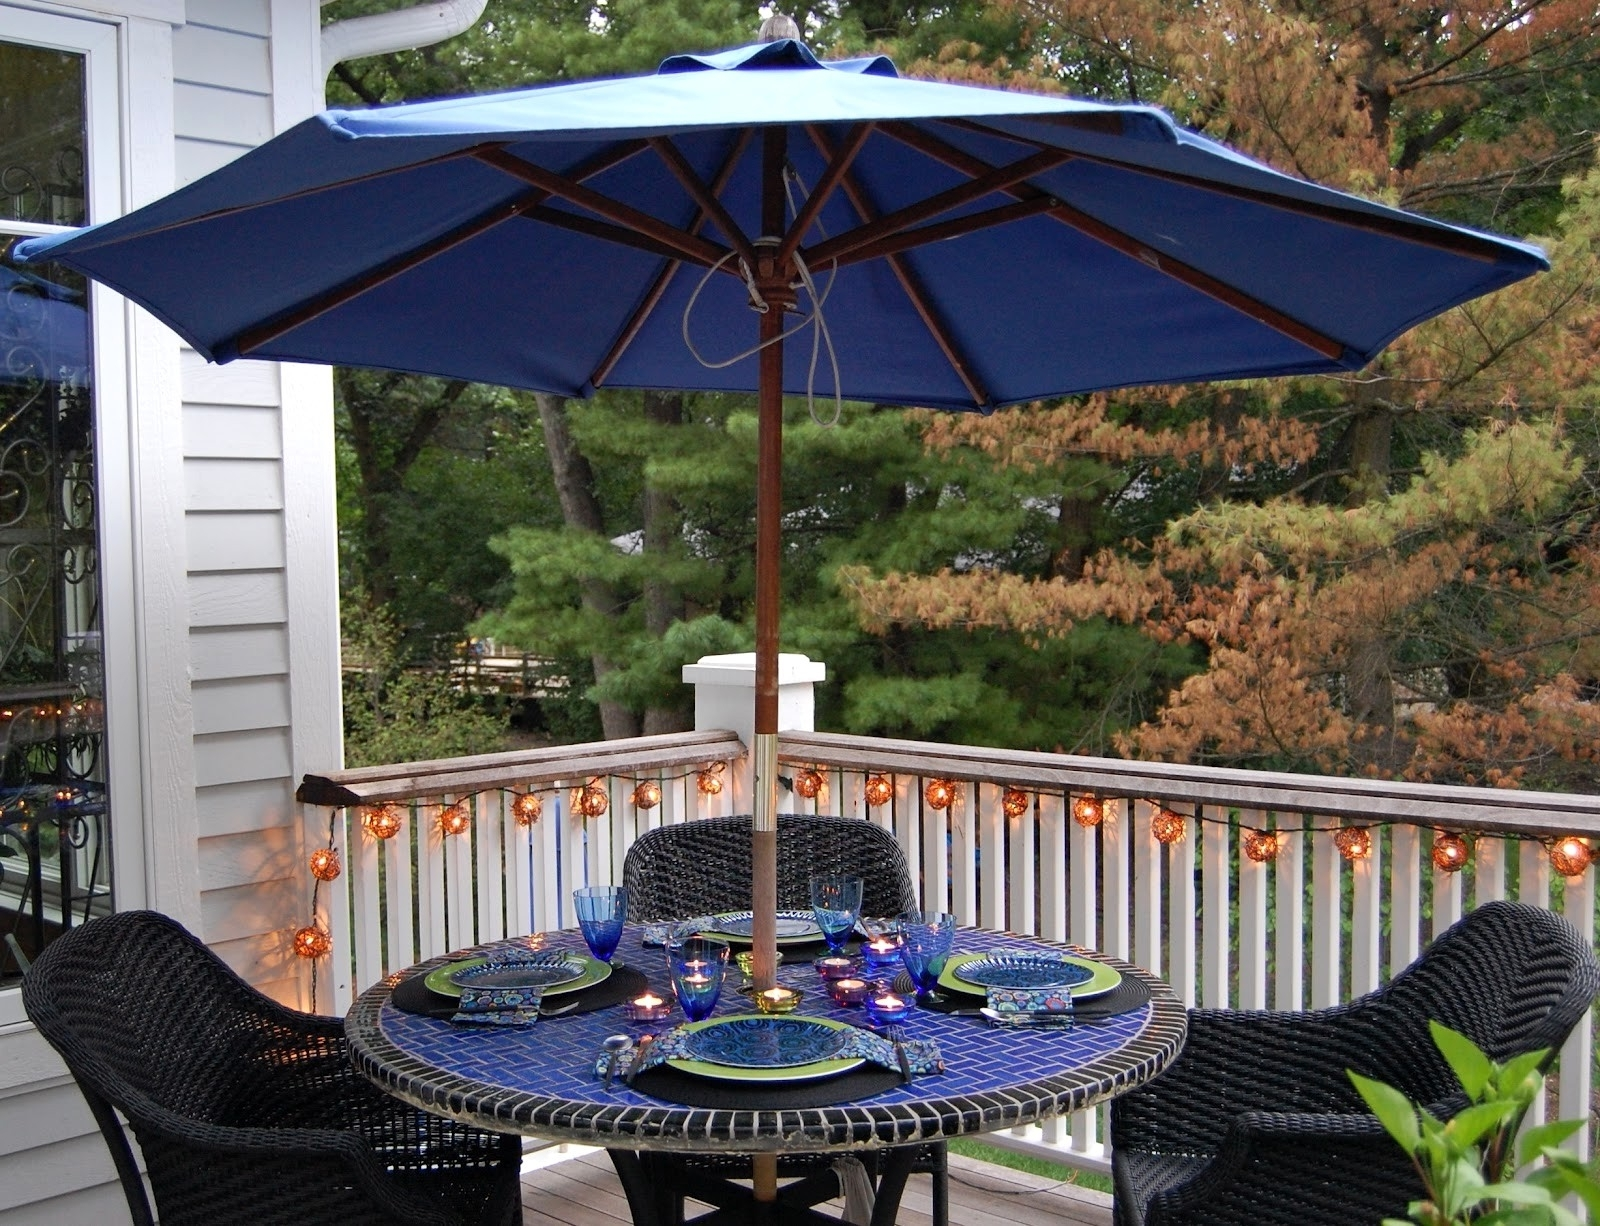 Patio Sets With Umbrellas With Widely Used Outdoor Patio Furniture Sets With Umbrella Enjoy Your Summer Time (View 14 of 20)